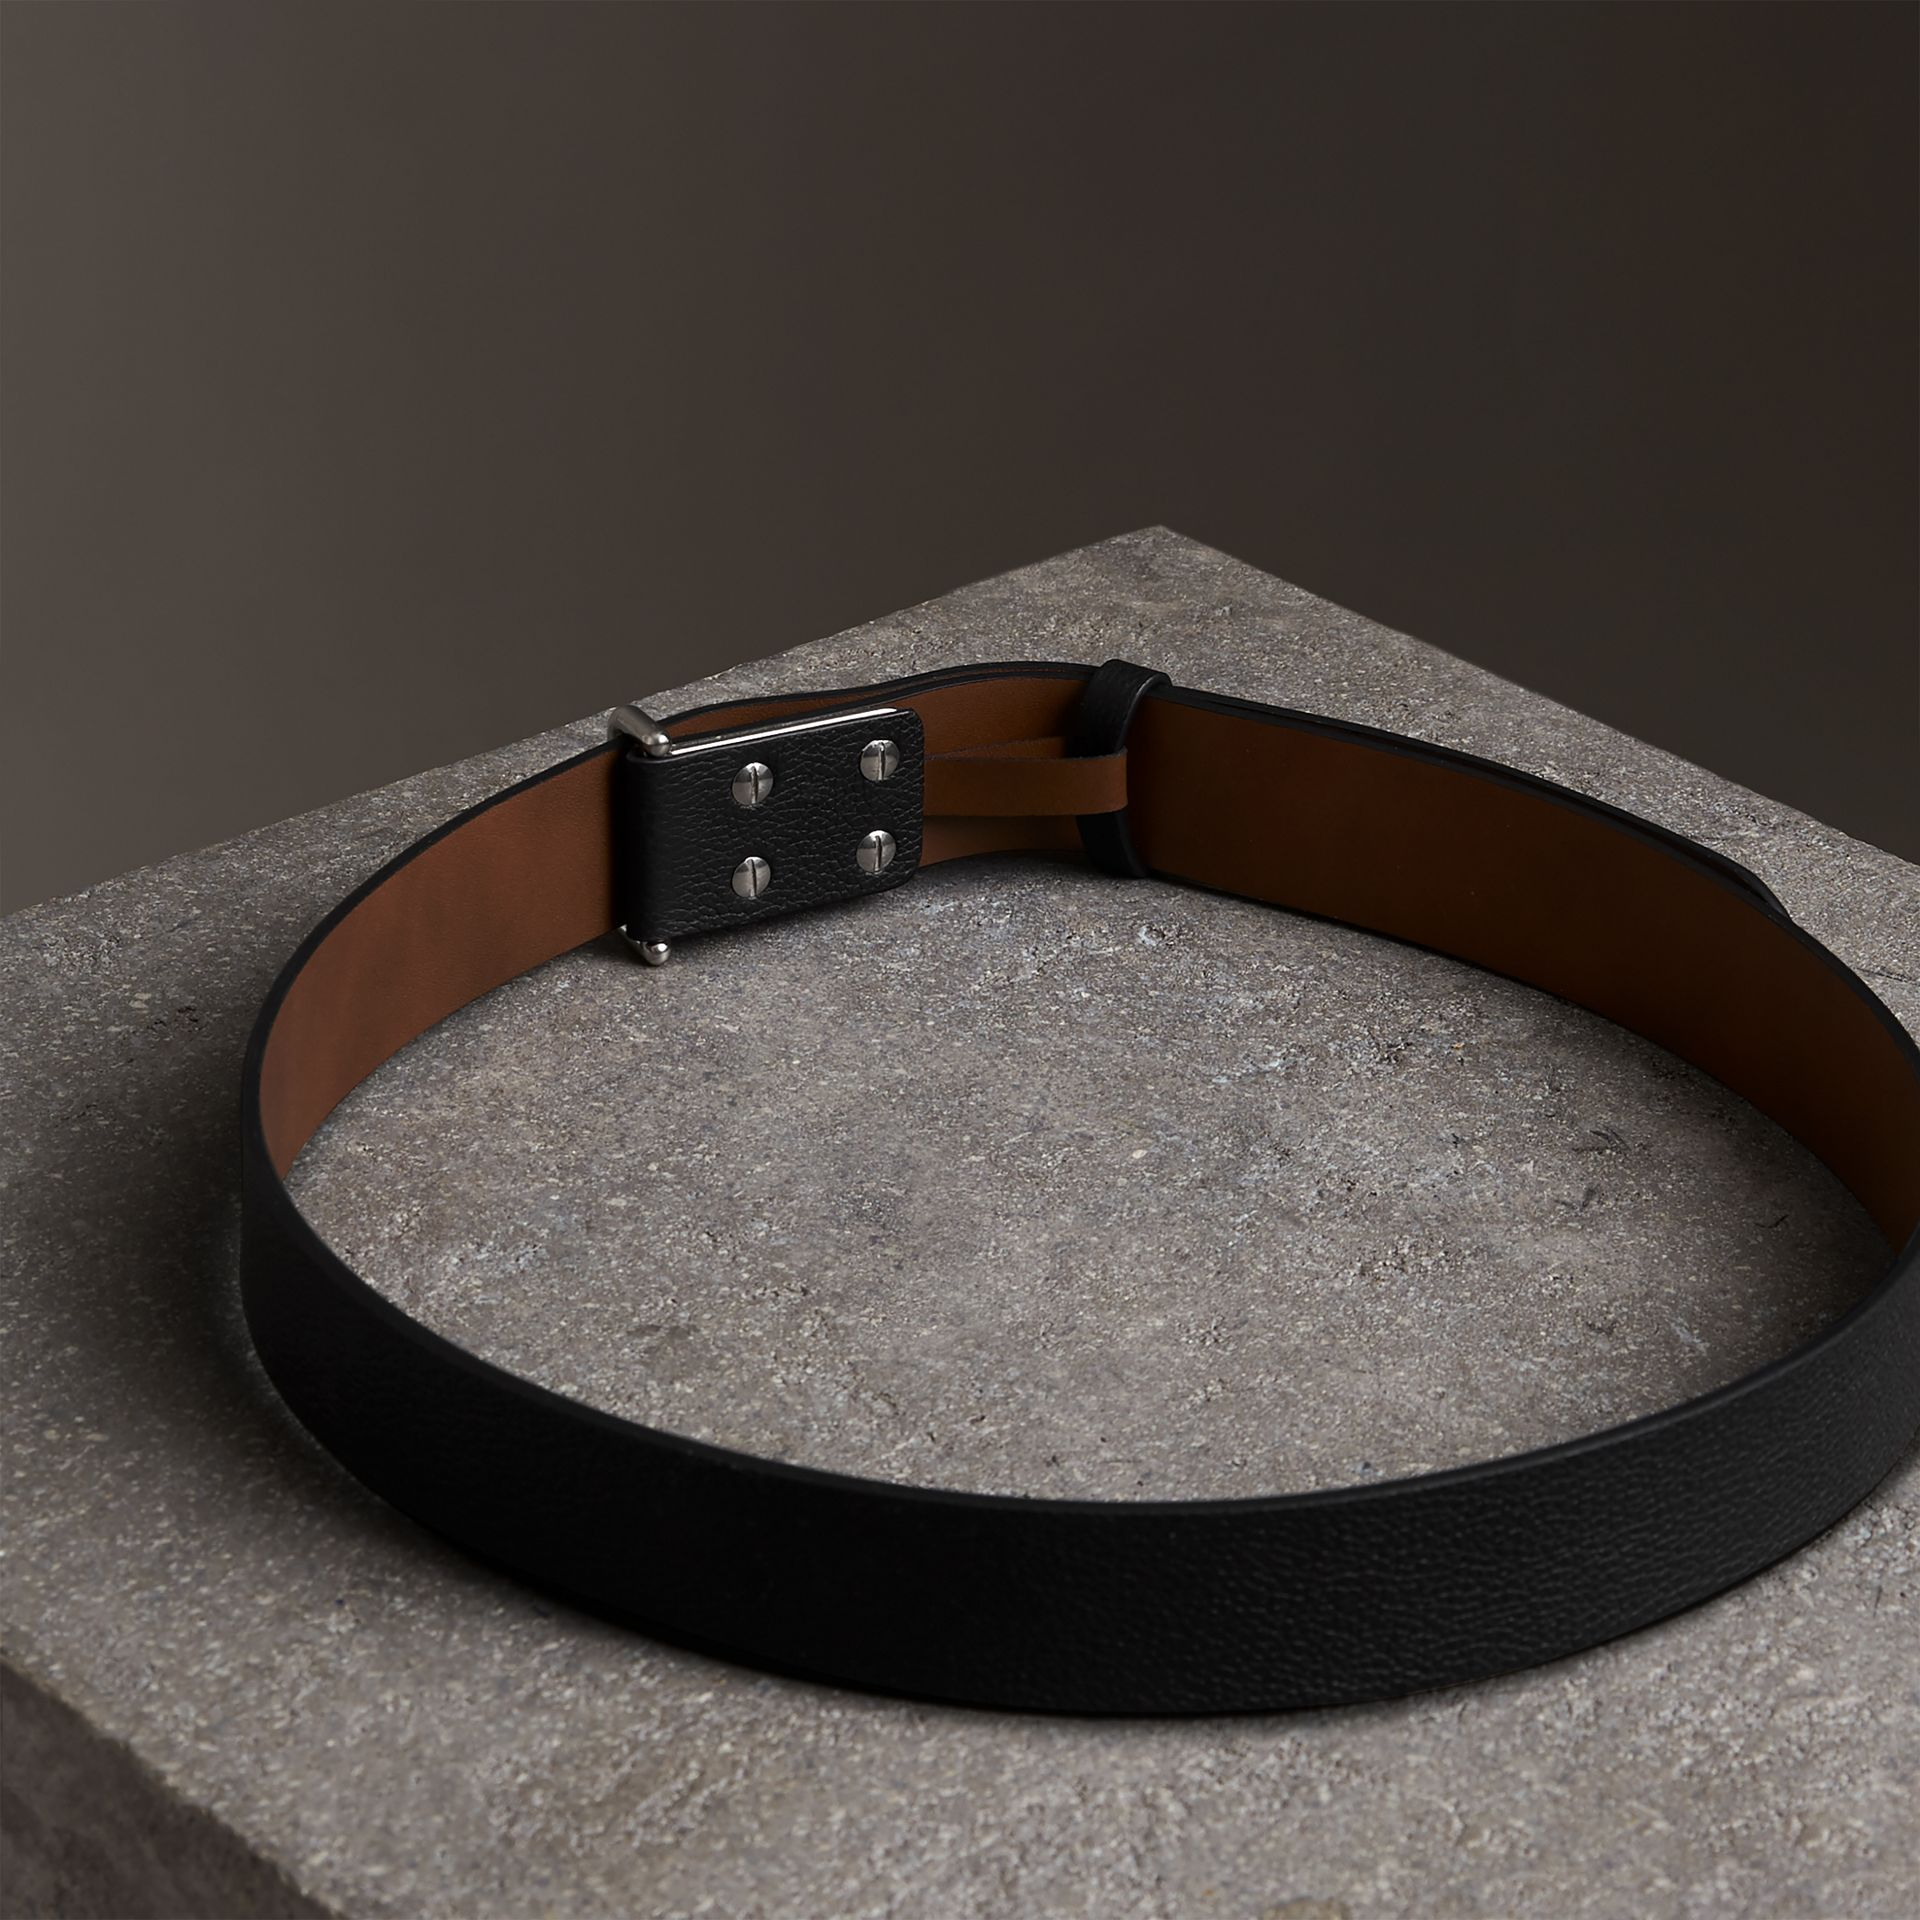 Push-Stud Grainy Leather Belt in Black - Men | Burberry Canada - gallery image 3